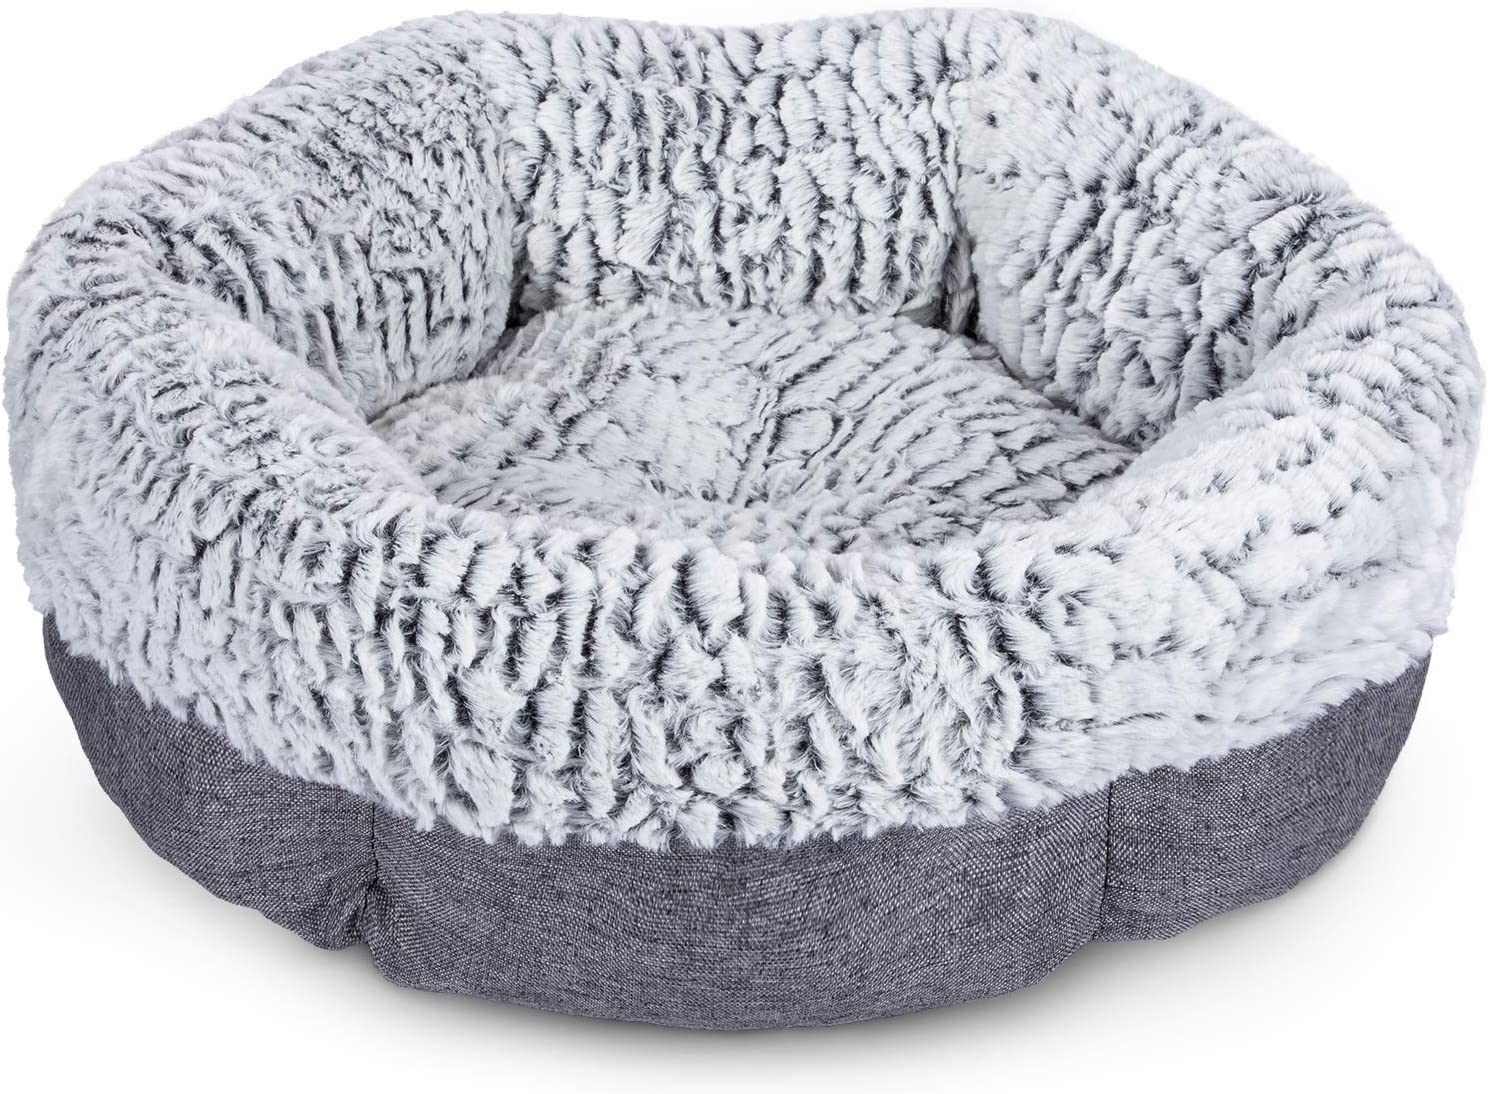 FURTIME Cat Bed & Small Dog Bed Soft Durable Pet Beds for Indoor Cats Detachable Machine Washable Calming Dog Bed Round Plush Cuddler Bed for Kitten and Puppy with Anti-Slip Bottom